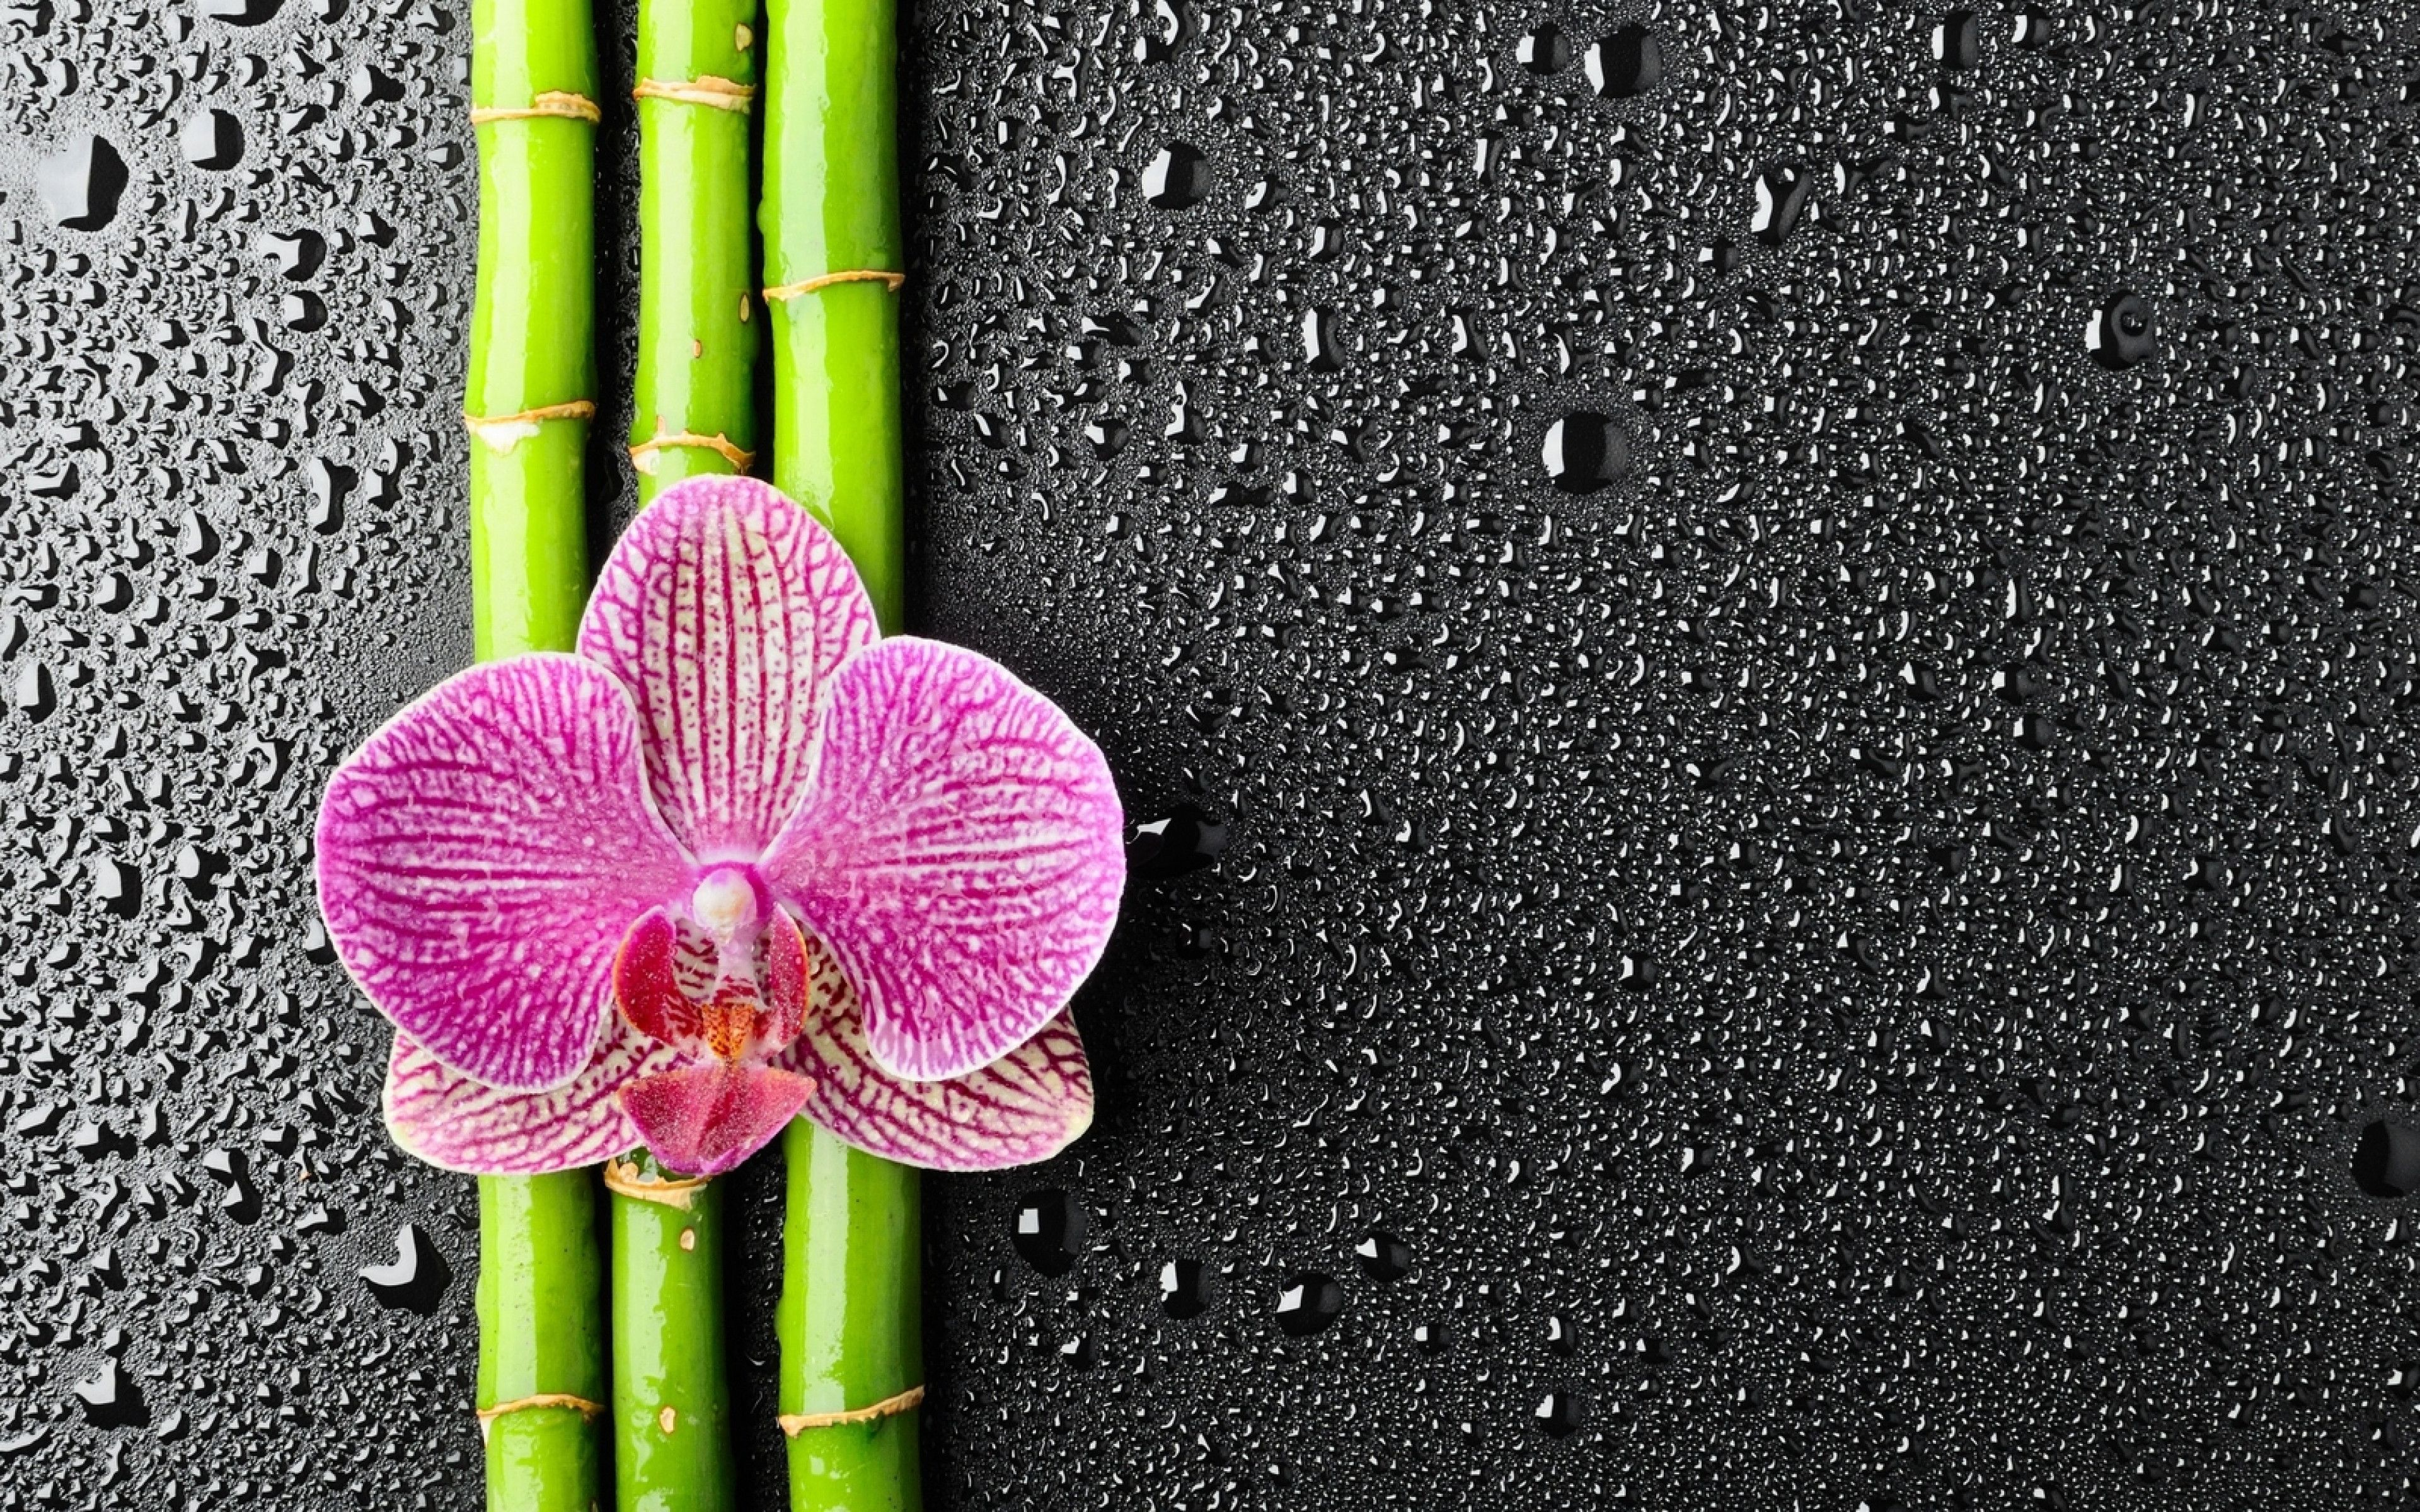 1920x1360 Candle Stones Orchid Bamboo Spa HD Wallpaper